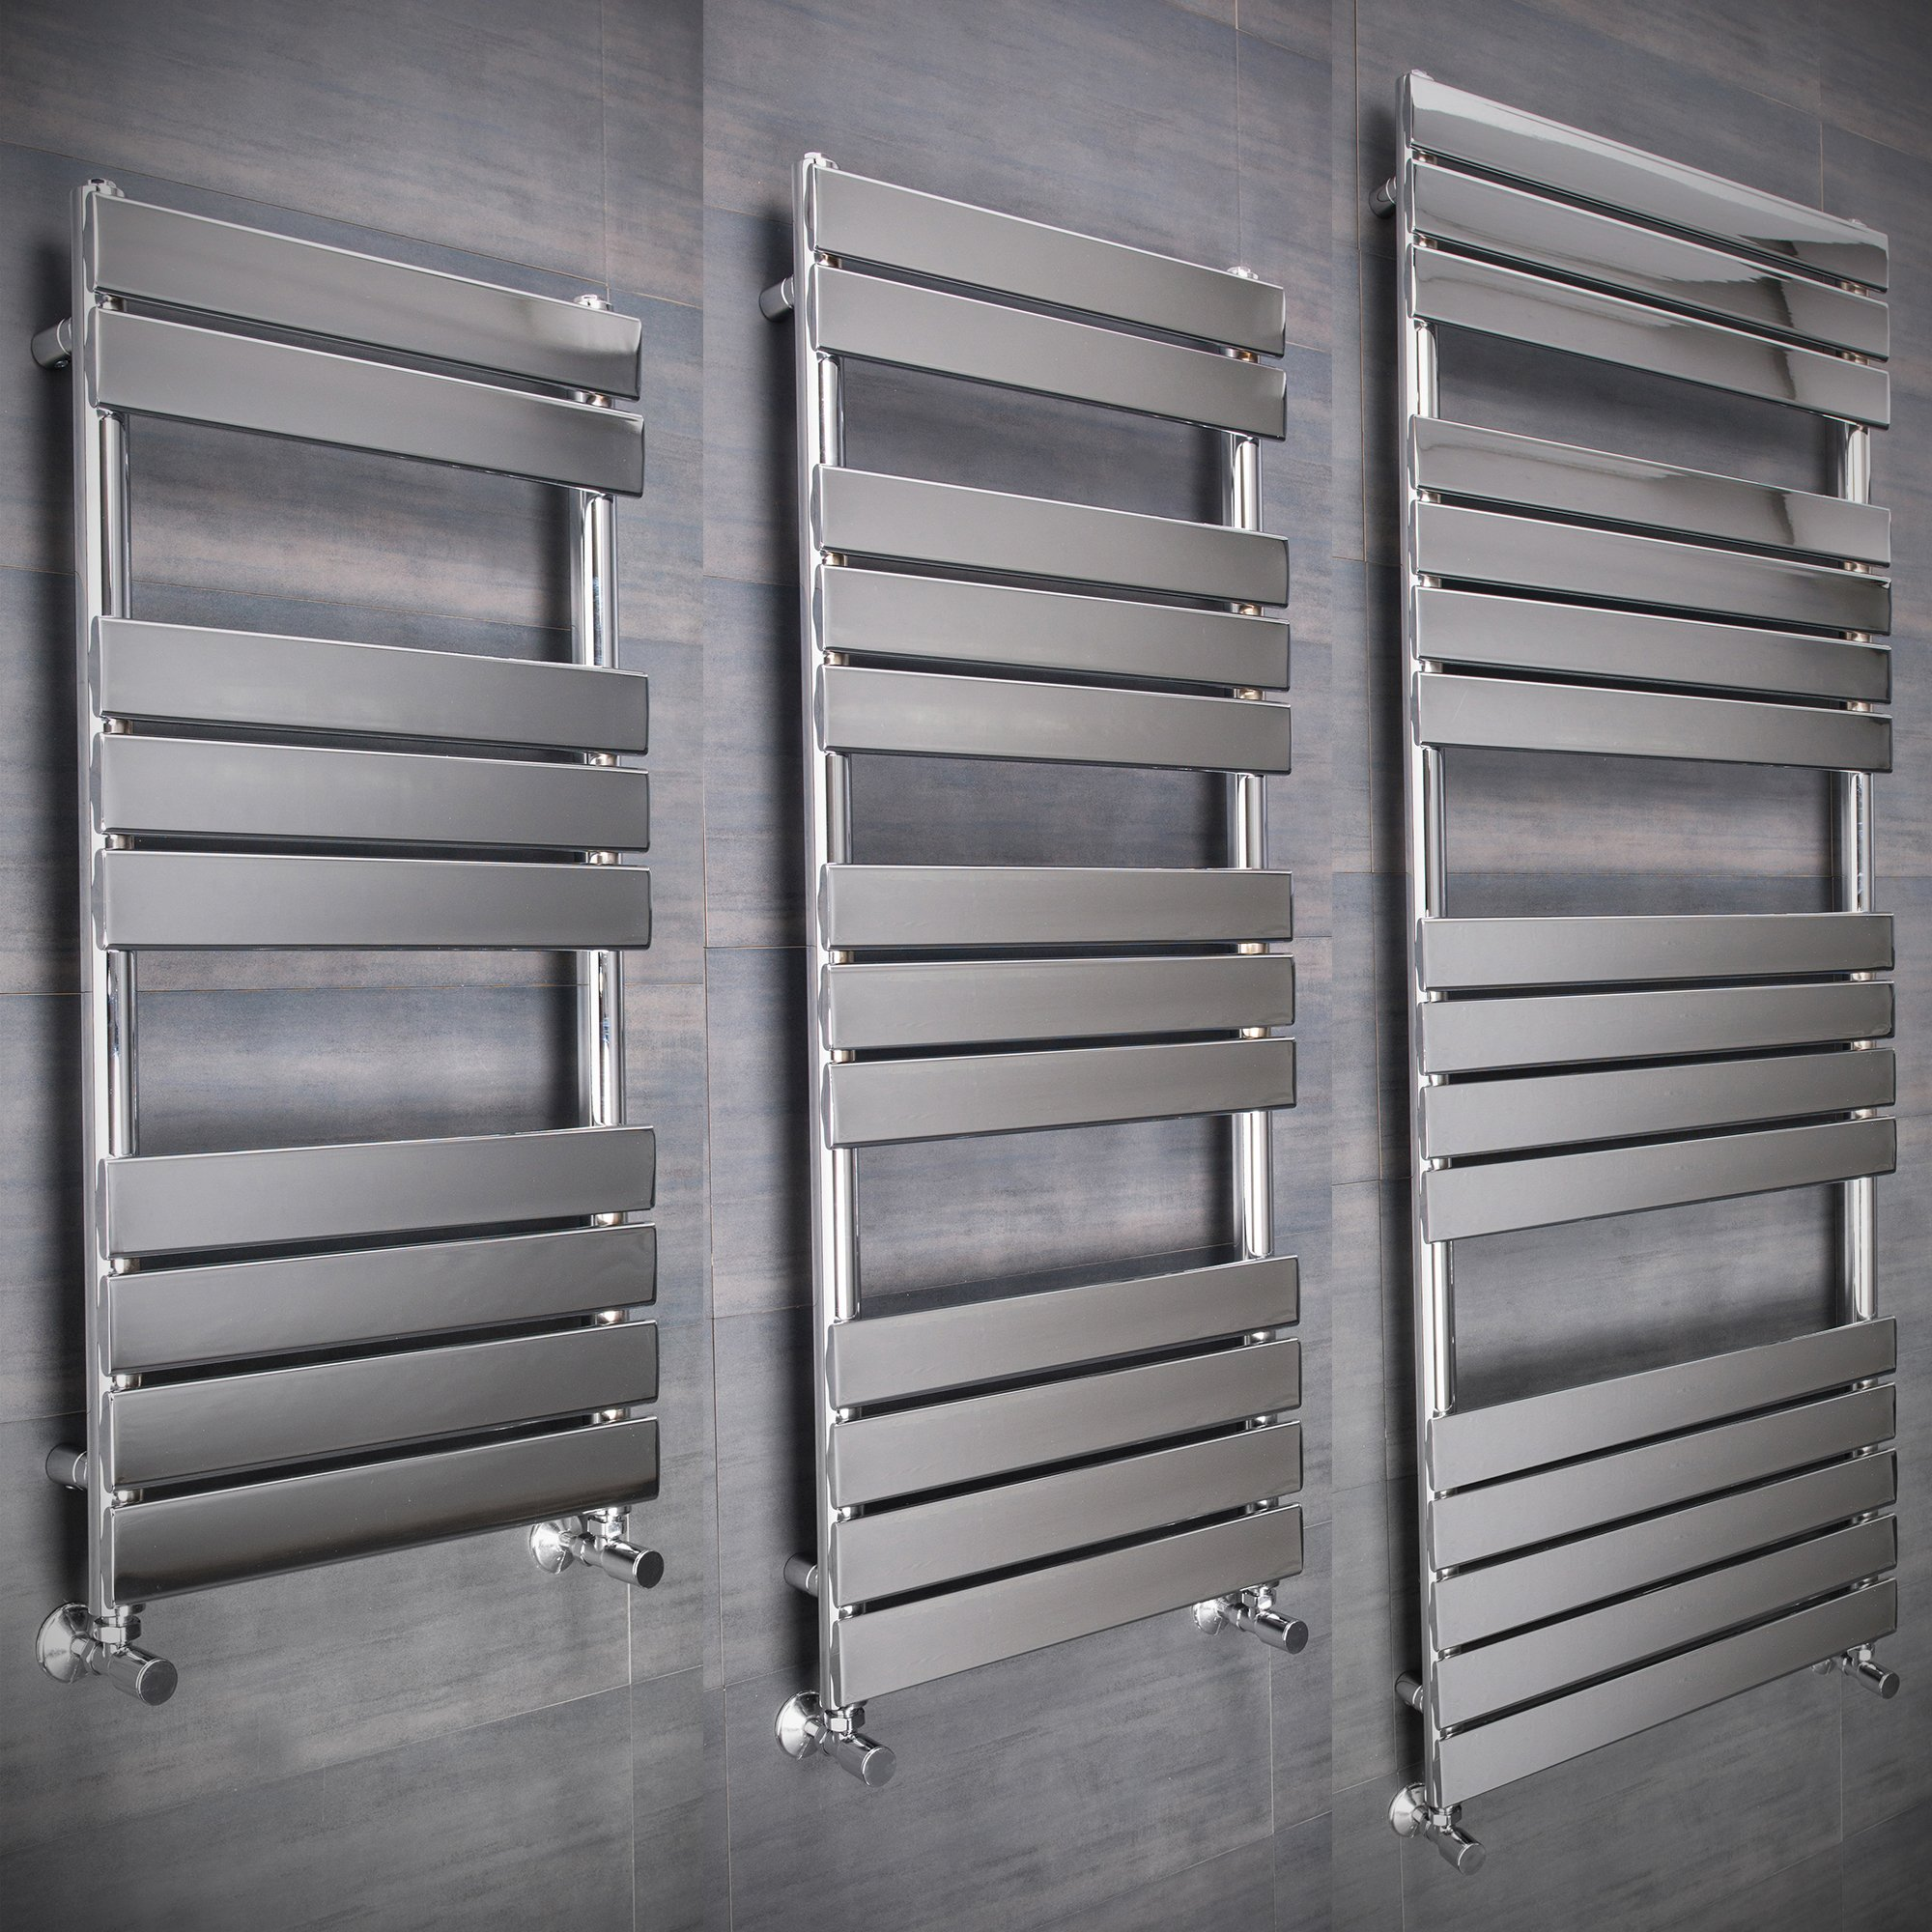 Electric Towel Rails: Flat Designer Thermostatic Electric Heating Heated